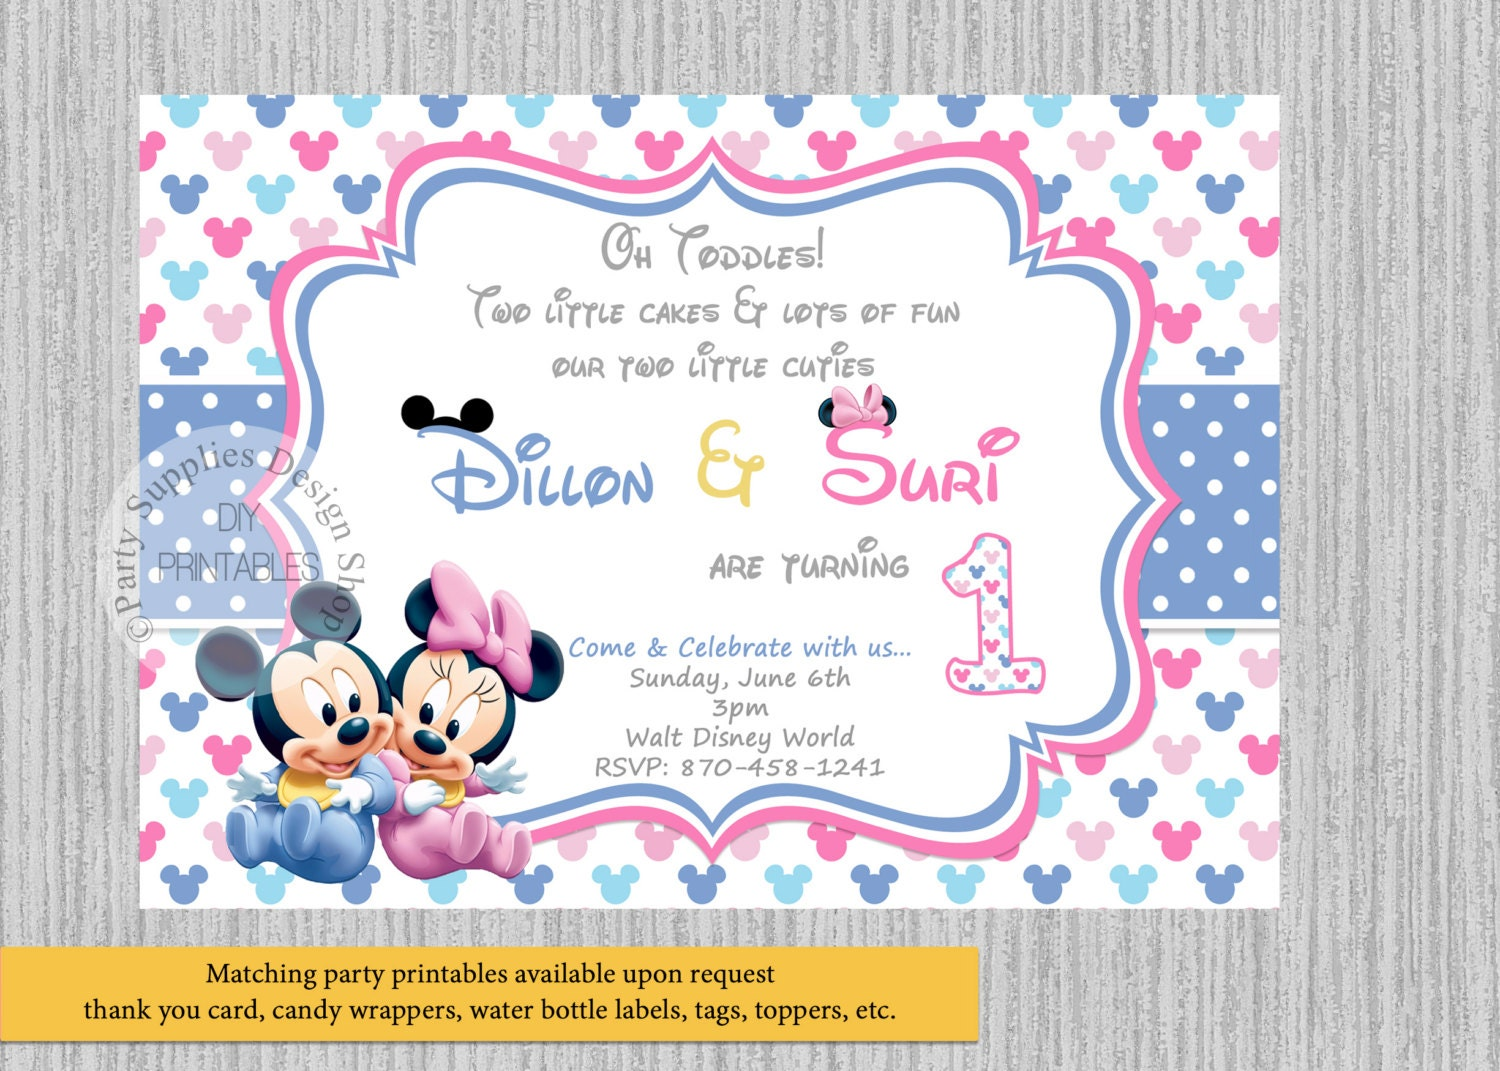 TWINS Baby Mickey Minnie Mouse Birthday Invitations Twins | Etsy